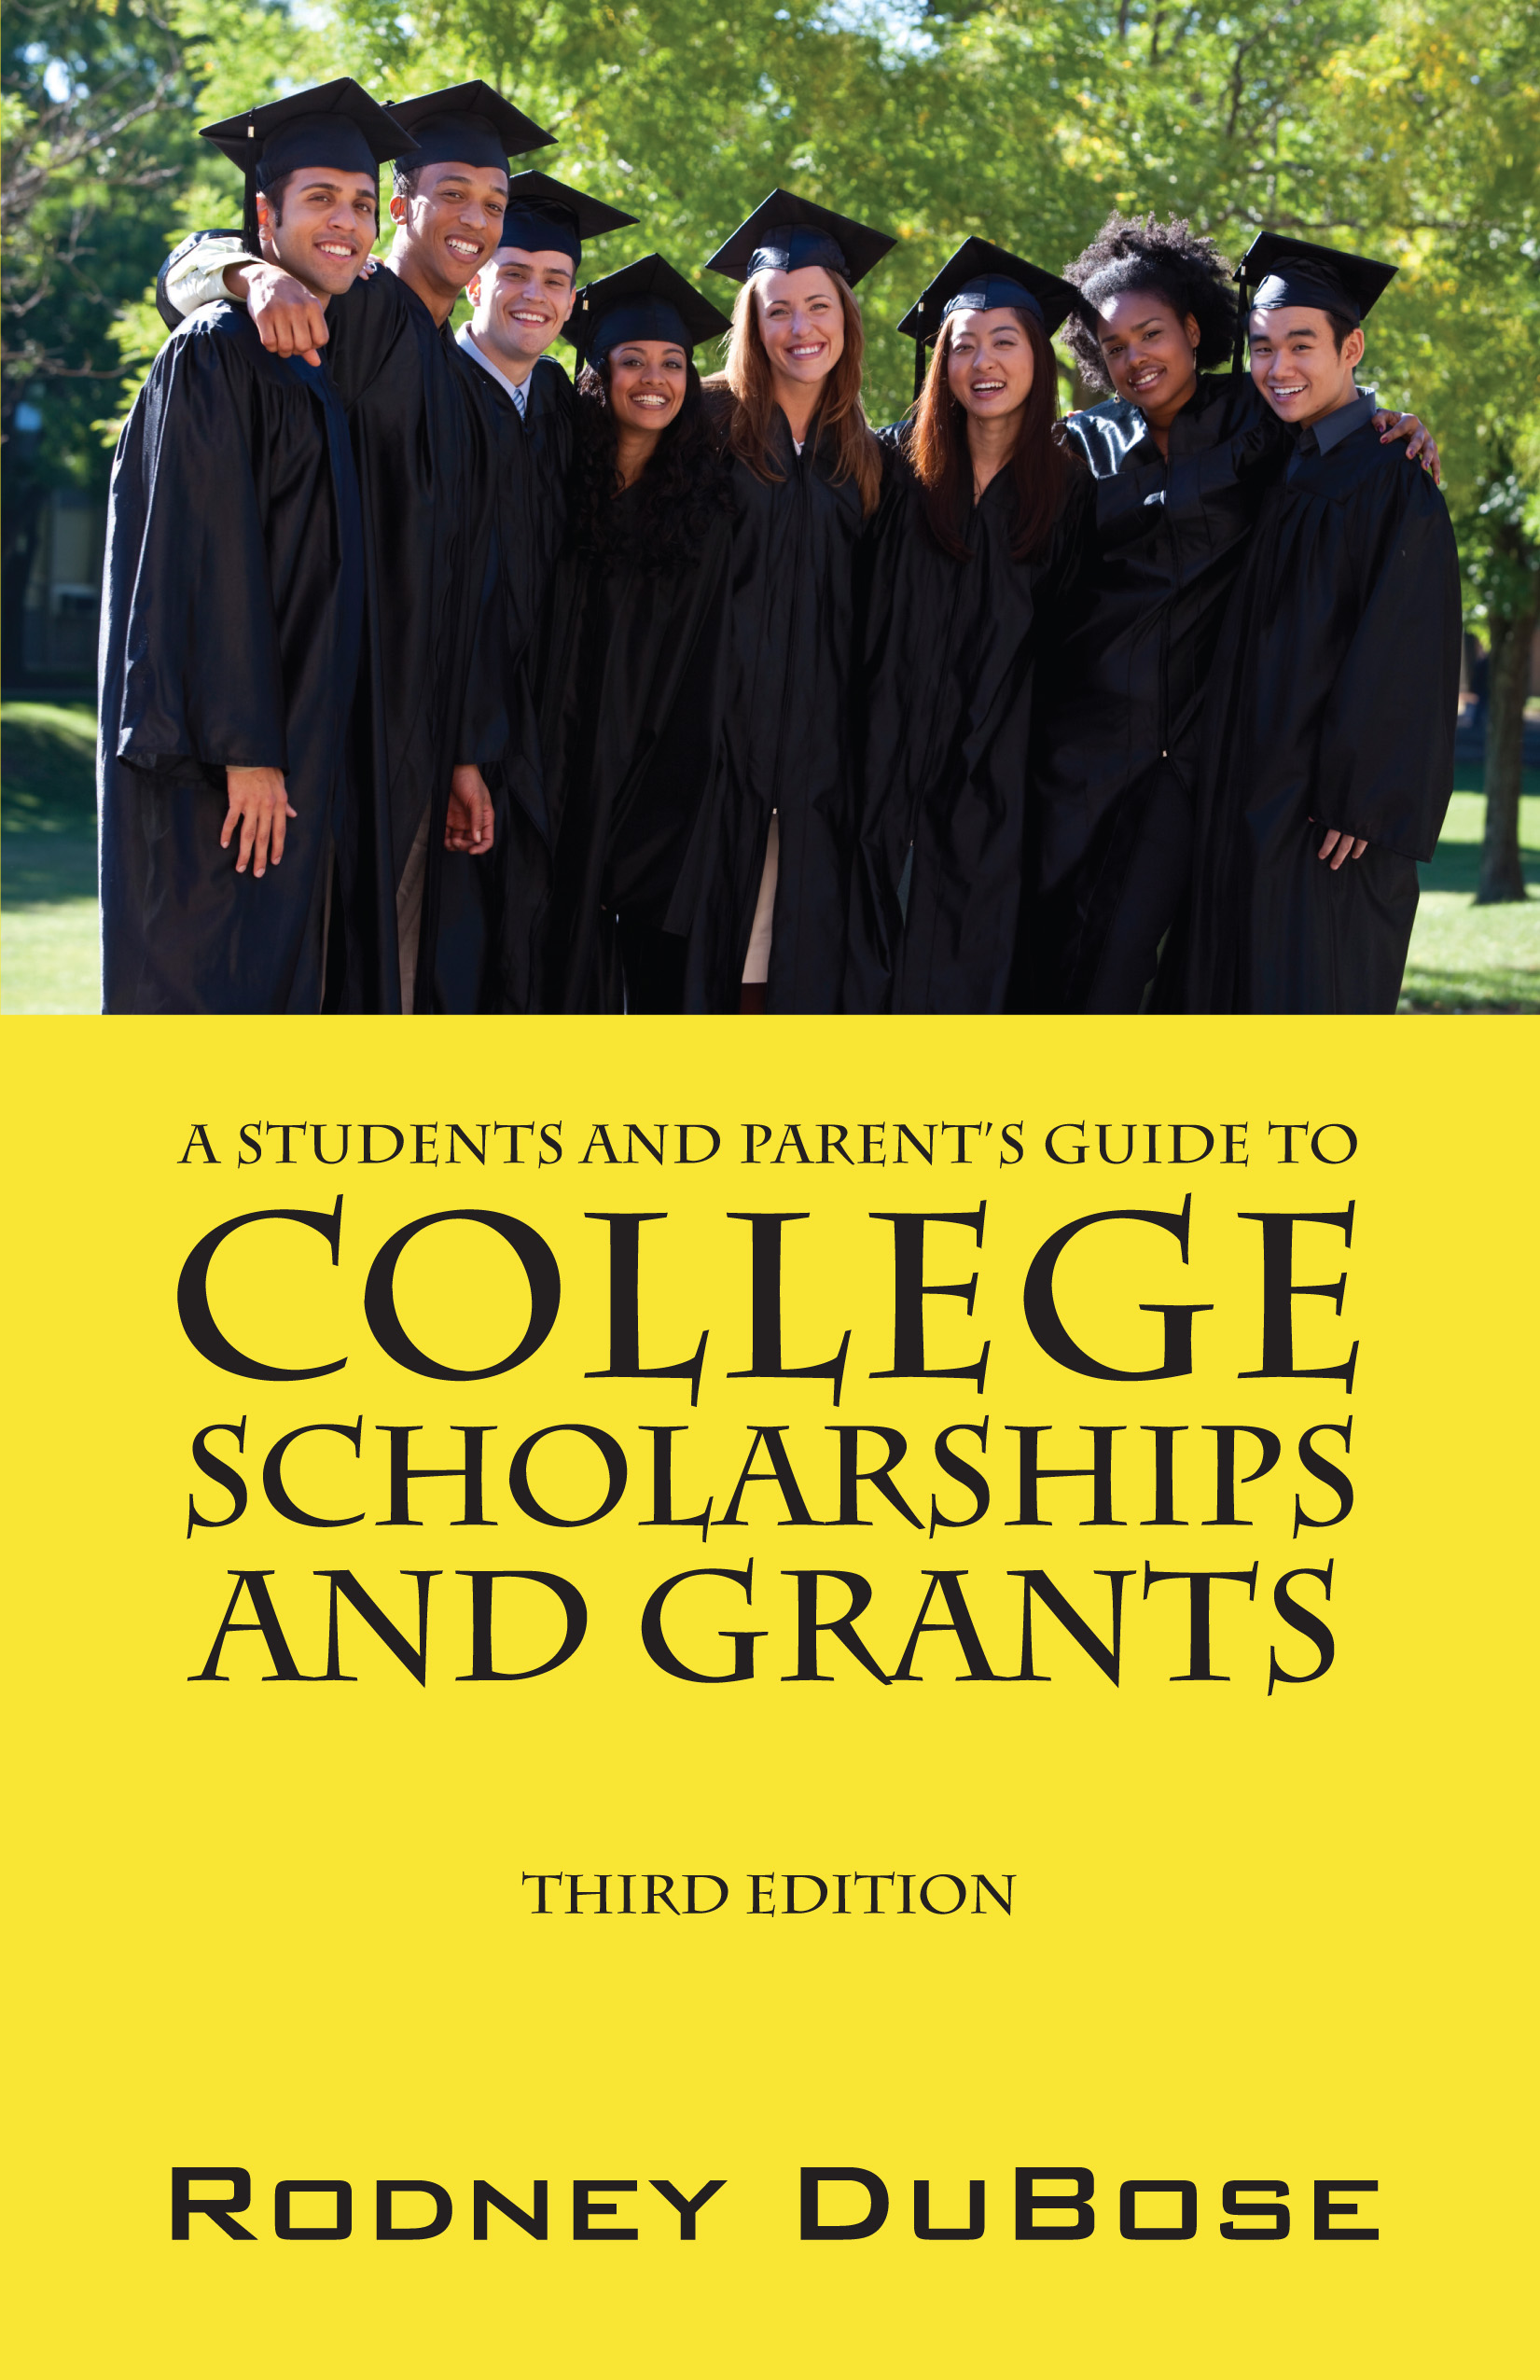 A Student and Parents Guide to College Scholarships and Grants